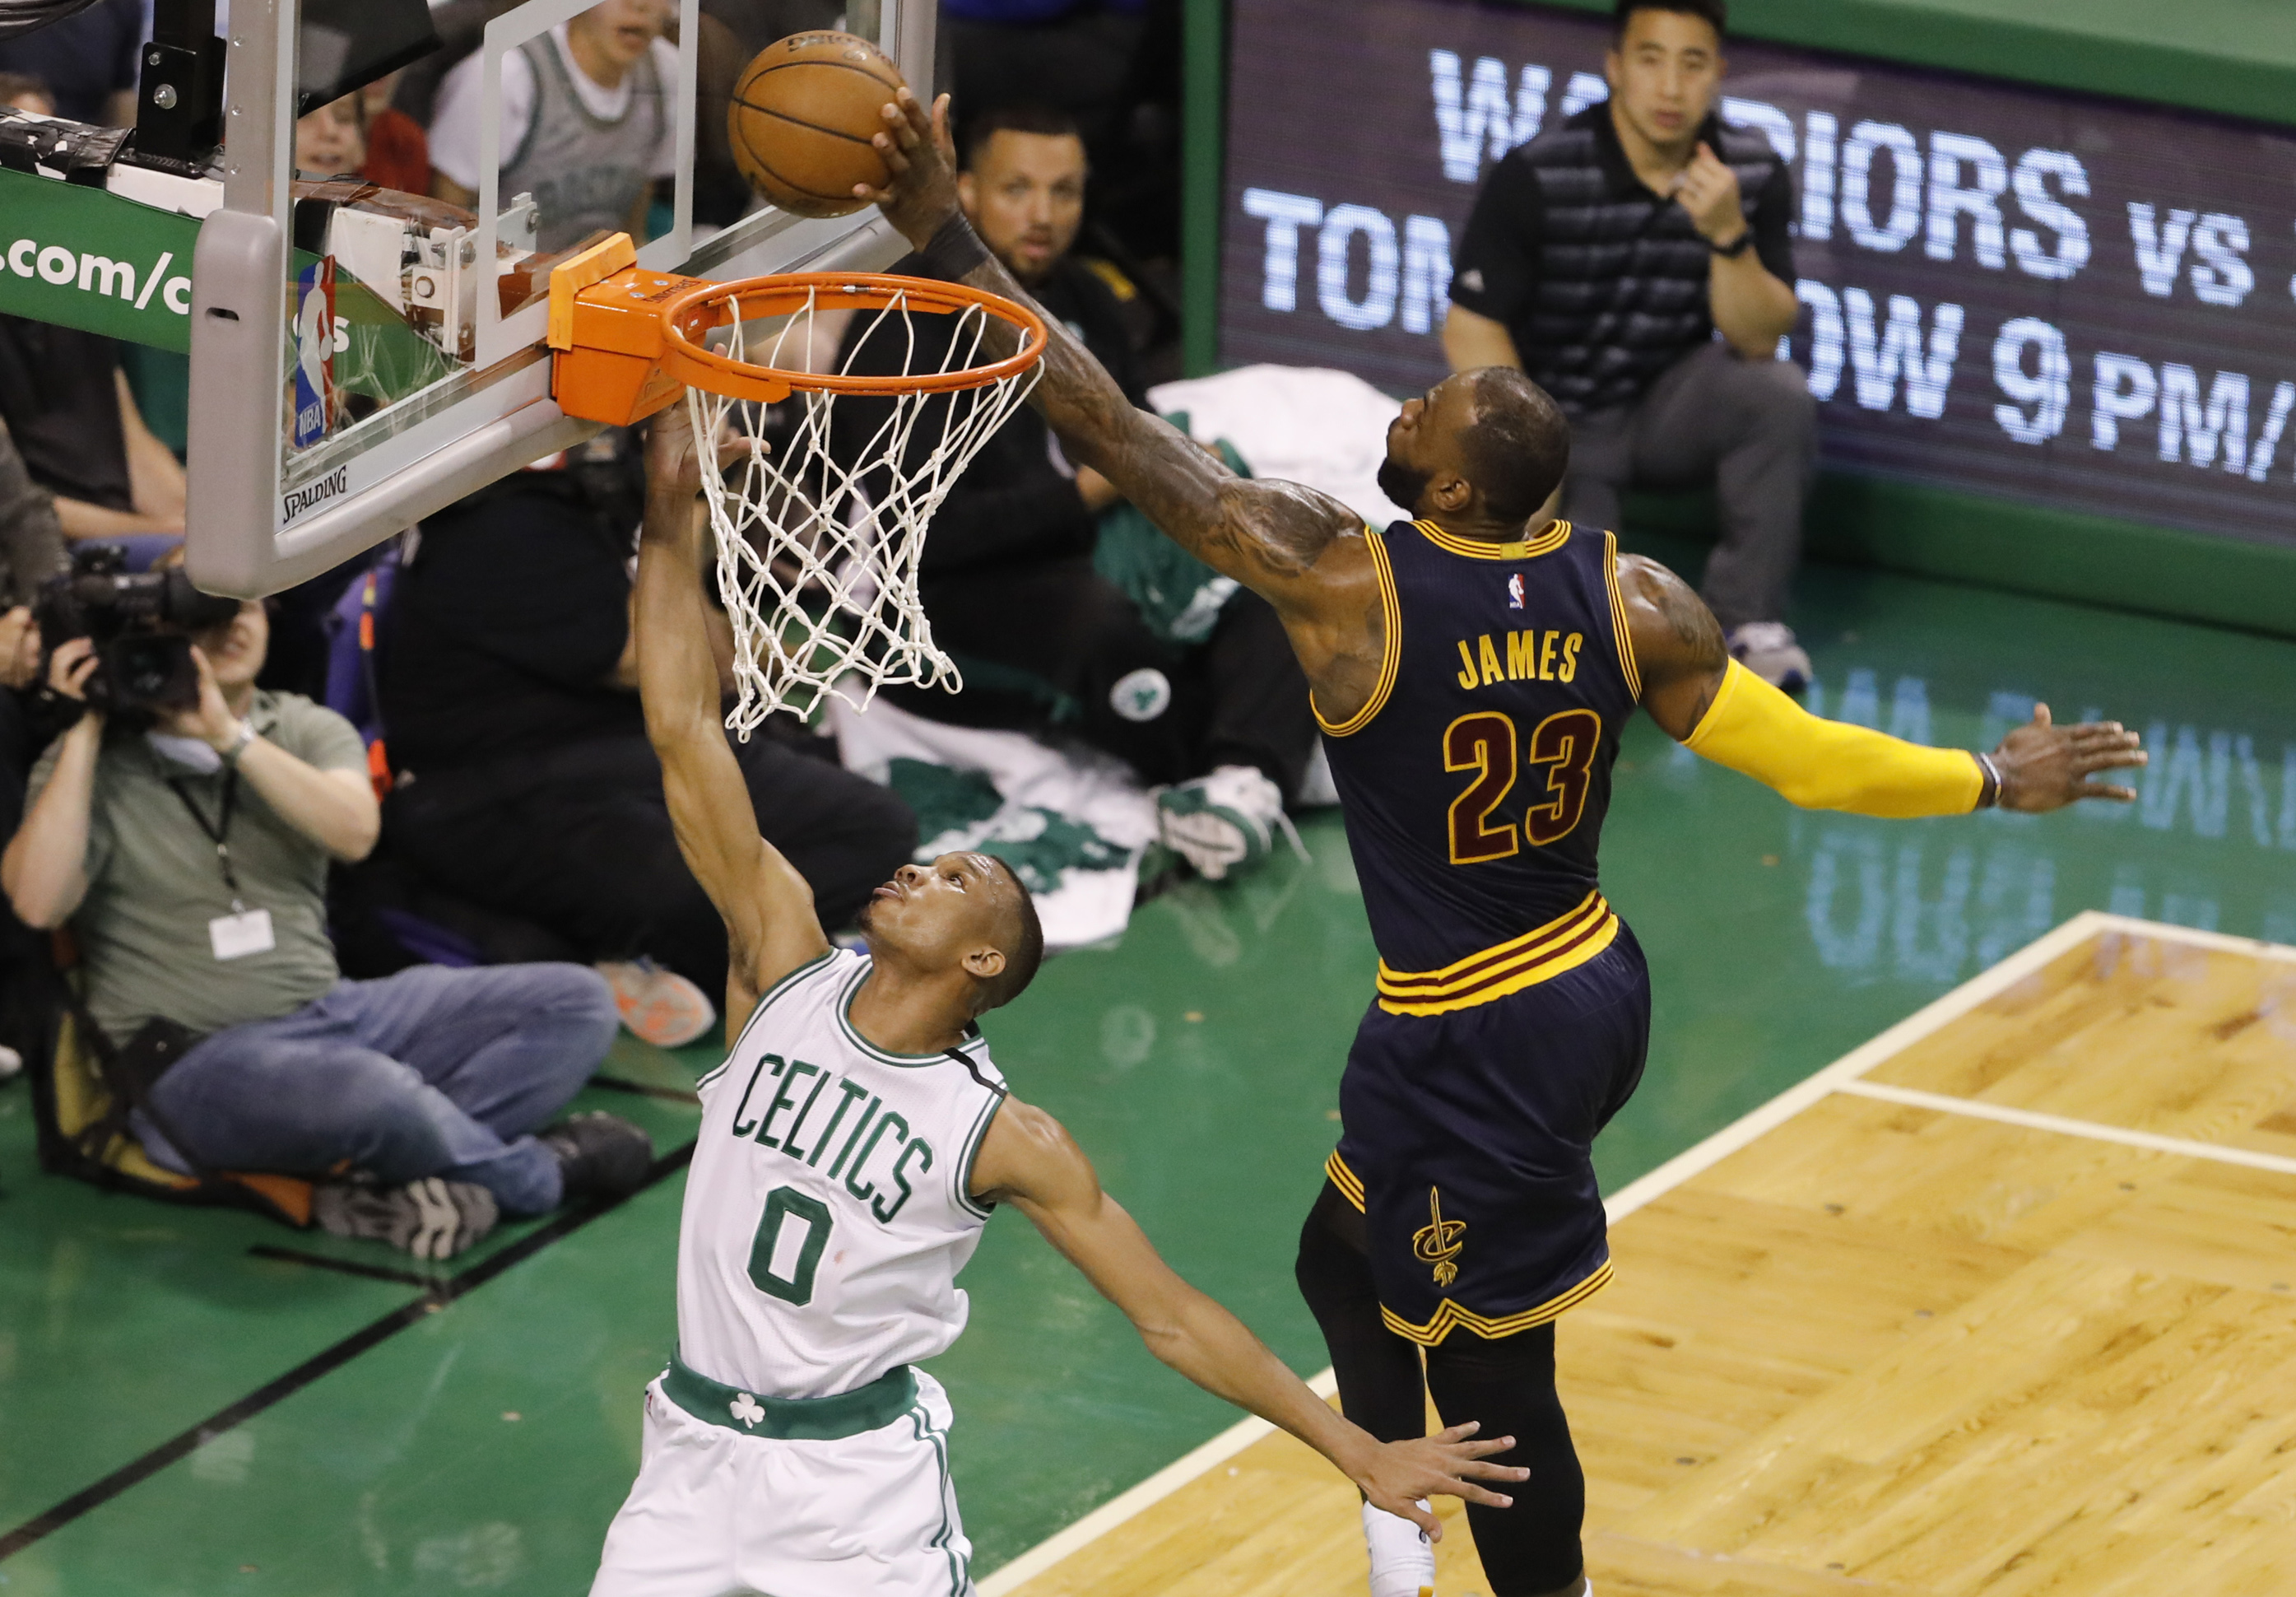 NBA Playoffs 2017: Cavaliers vs. Celtics Game 3 live stream: Watch online